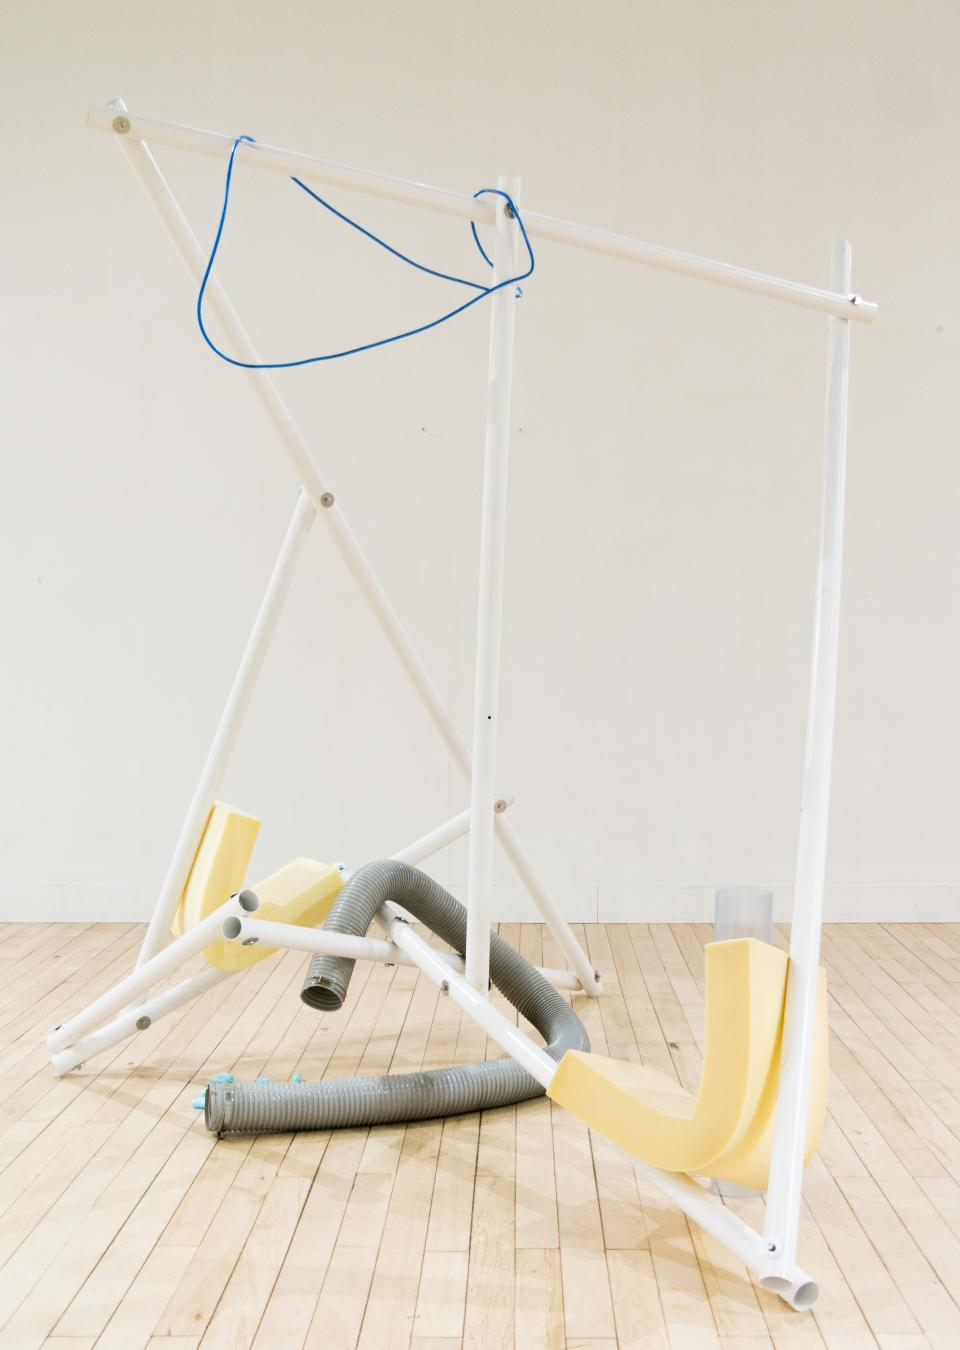 Caroline Lerbro_Sculpture - BA (Hons)_2020_With, without _6.jpg